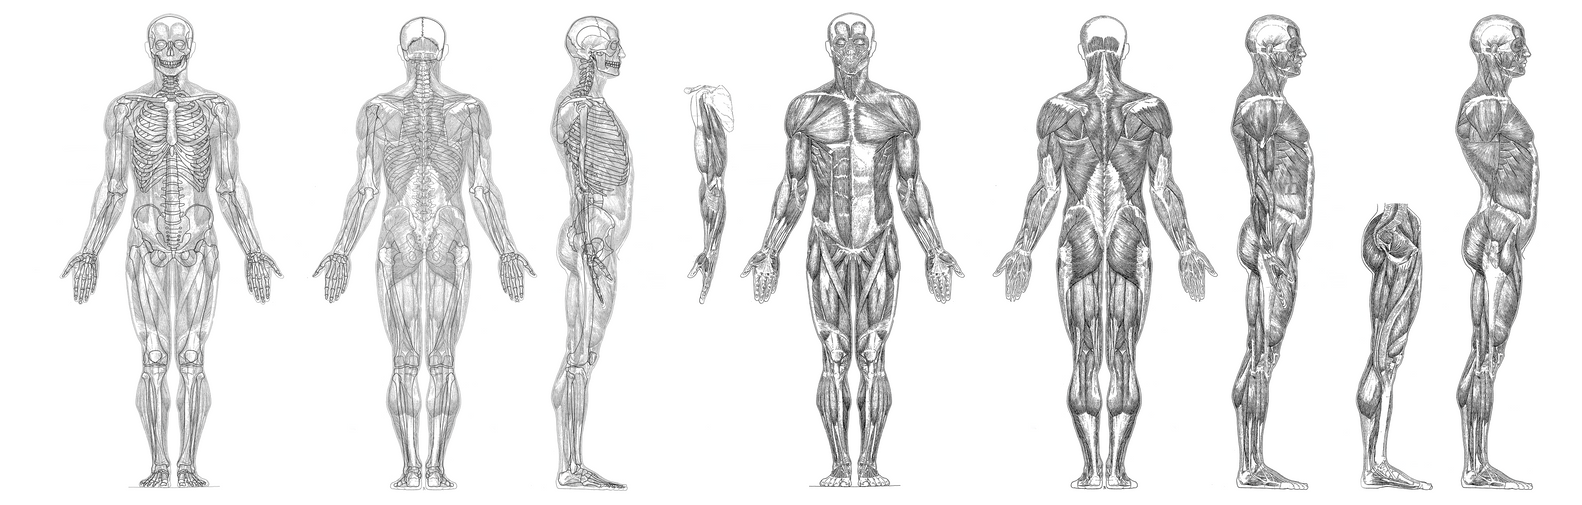 My Muscle Anatomy Reference Hi Rez by elitassj4 on DeviantArt